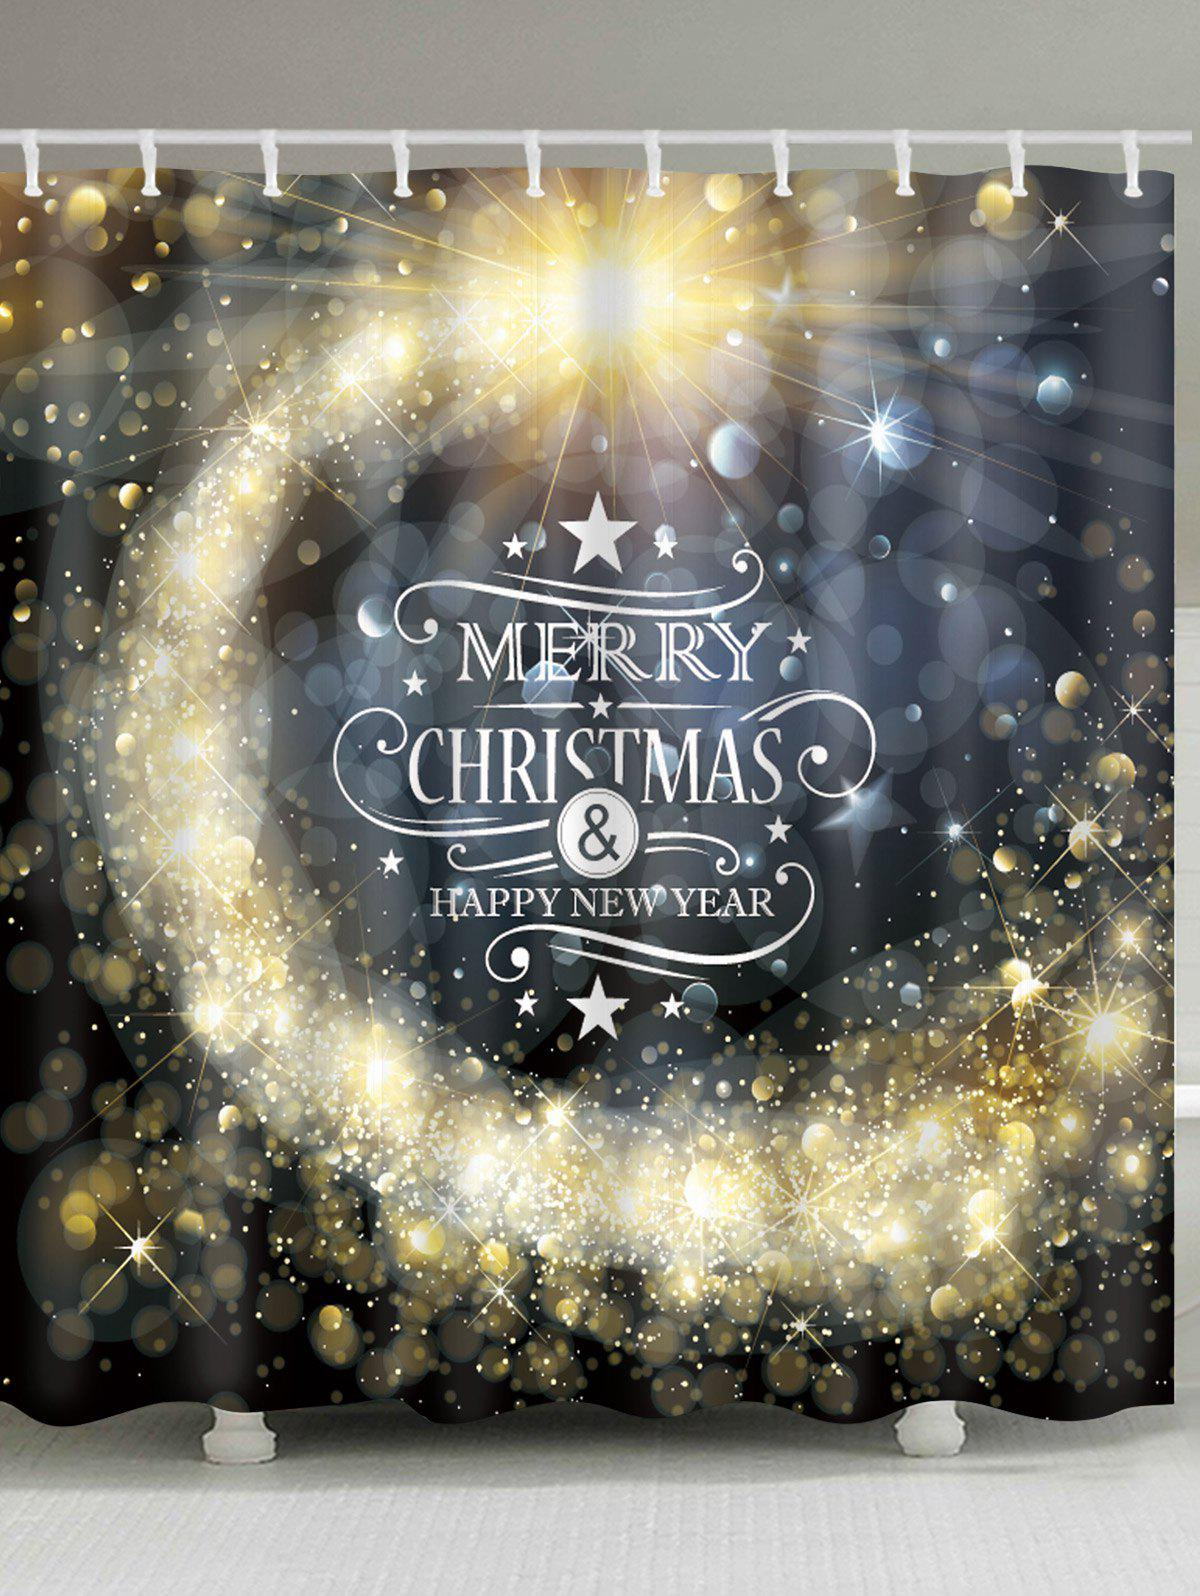 Merry Christmas Star Print Waterproof Fabric Bathroom Shower CurtainHOME<br><br>Size: W59 INCH * L71 INCH; Color: COLORMIX; Products Type: Shower Curtains; Materials: Polyester; Pattern: Letter; Style: Festival; Number of Hook Holes: W59 inch*L71 inch: 10; W71 inch*L71 inch: 12; W71 inch*L79 inch: 12; Package Contents: 1 x Shower Curtain 1 x Hooks (Set);